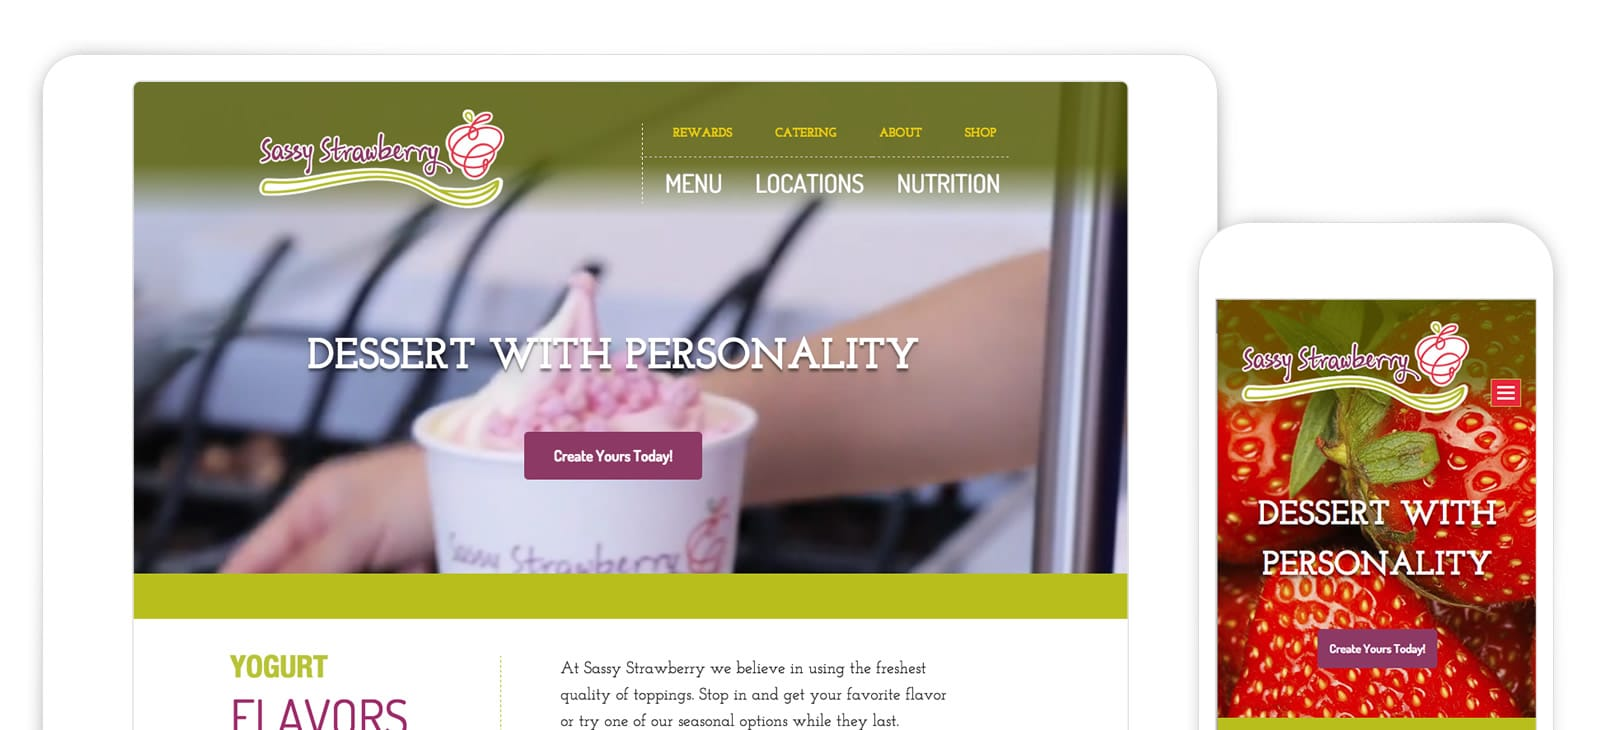 Sassy Strawberry Web Design